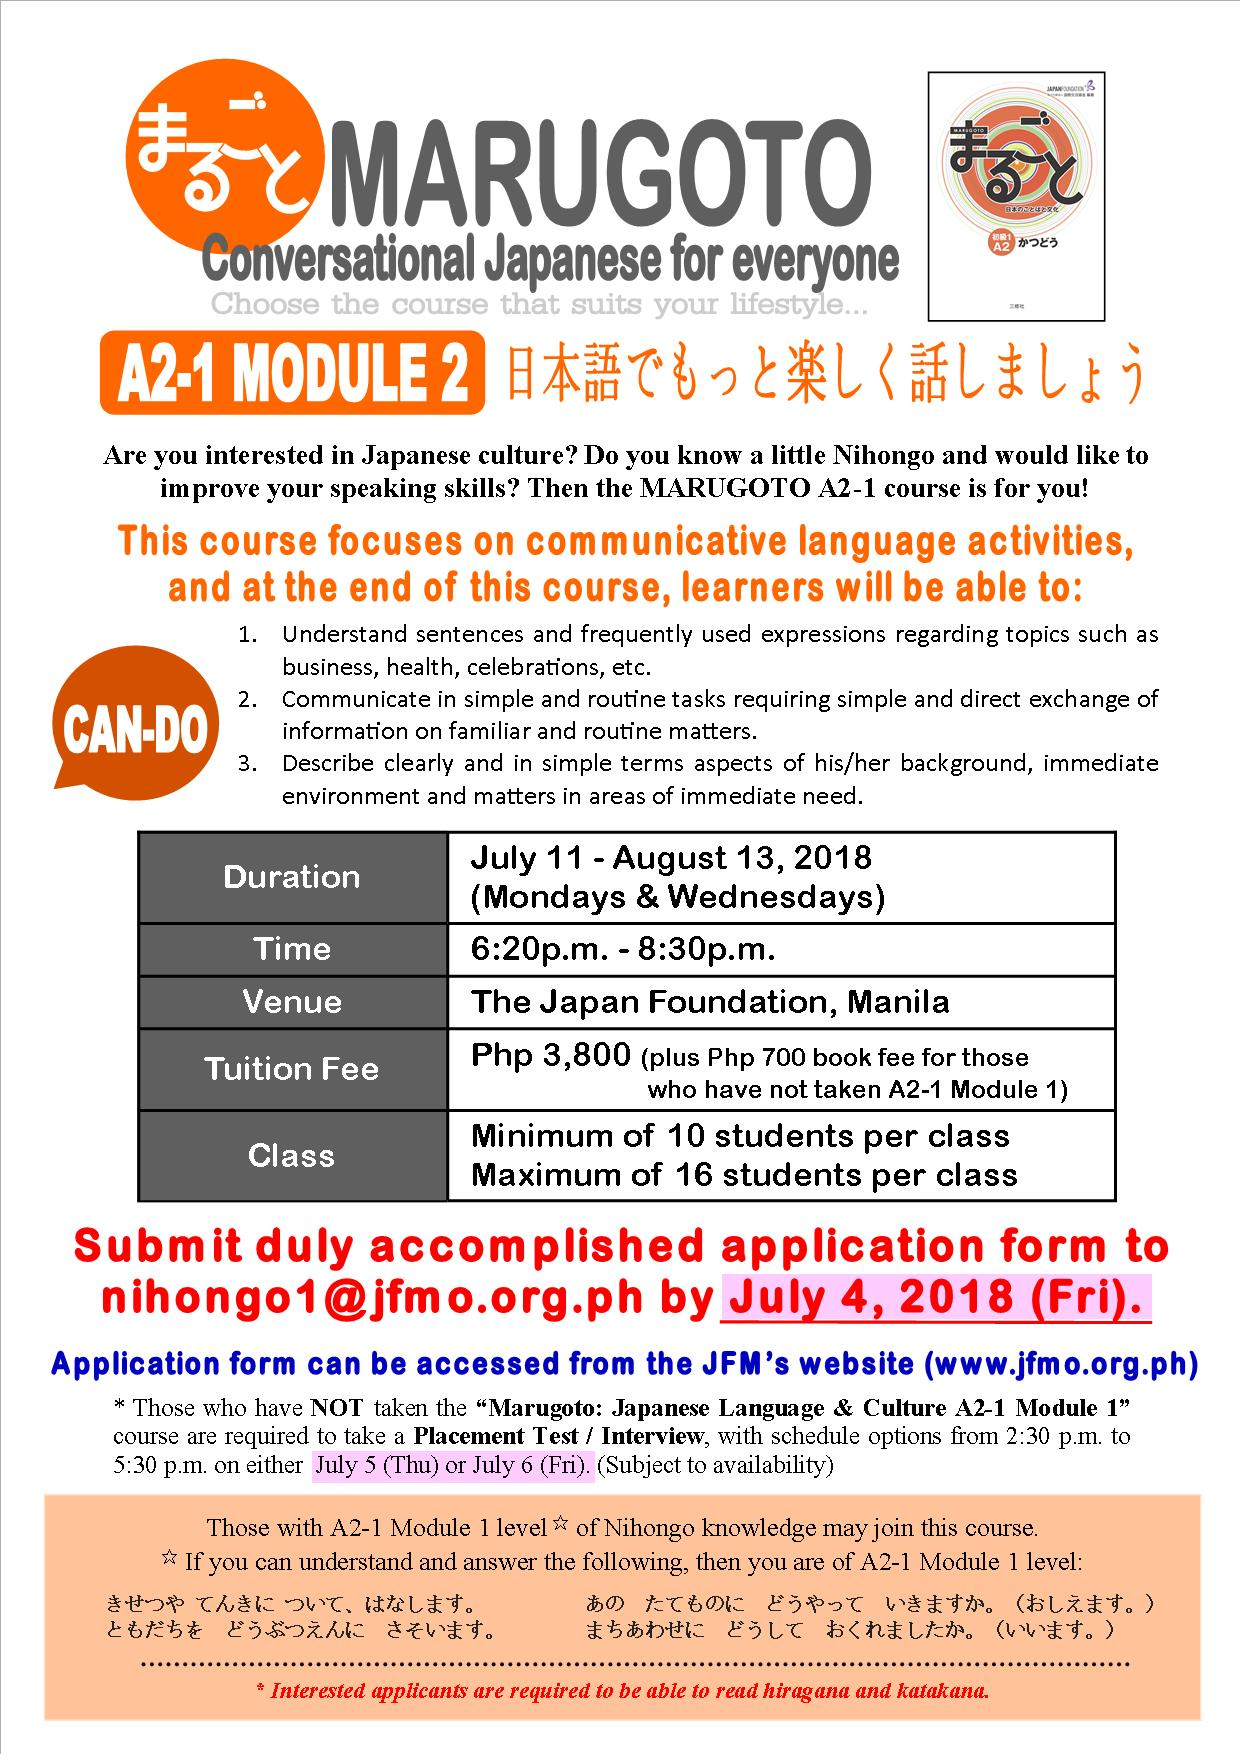 MARUGOTO Conversational Japanese for Everyone A2-1 Module 2 – Application Deadline: July 4 (Wed)